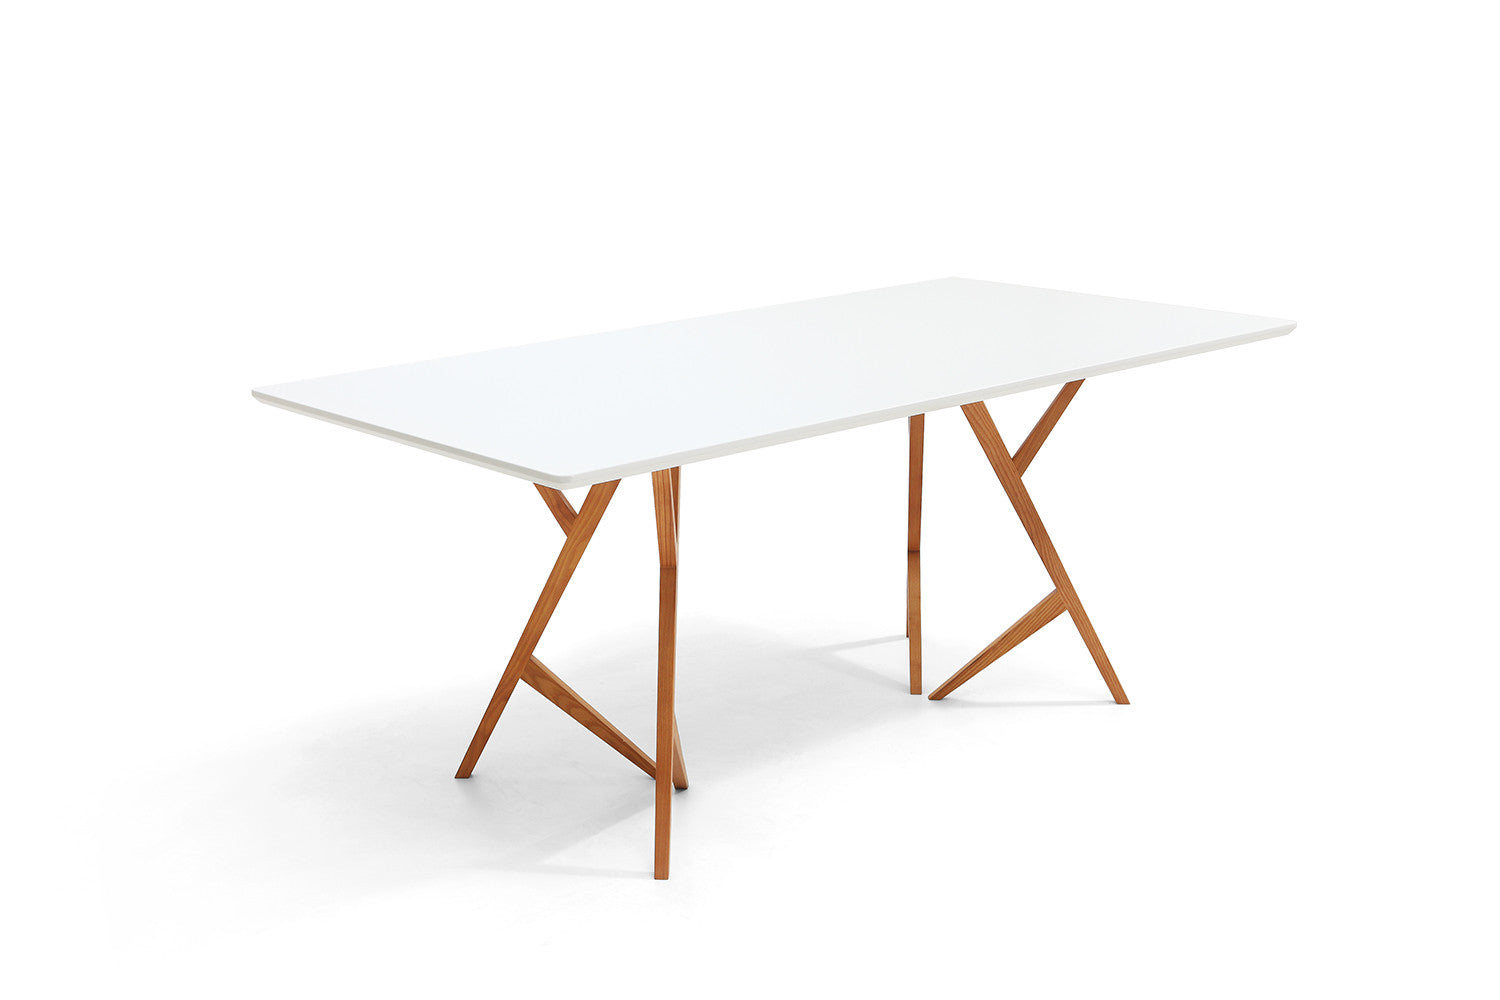 Table De Salle A Manger Design Scandinave Vispa Dewarens